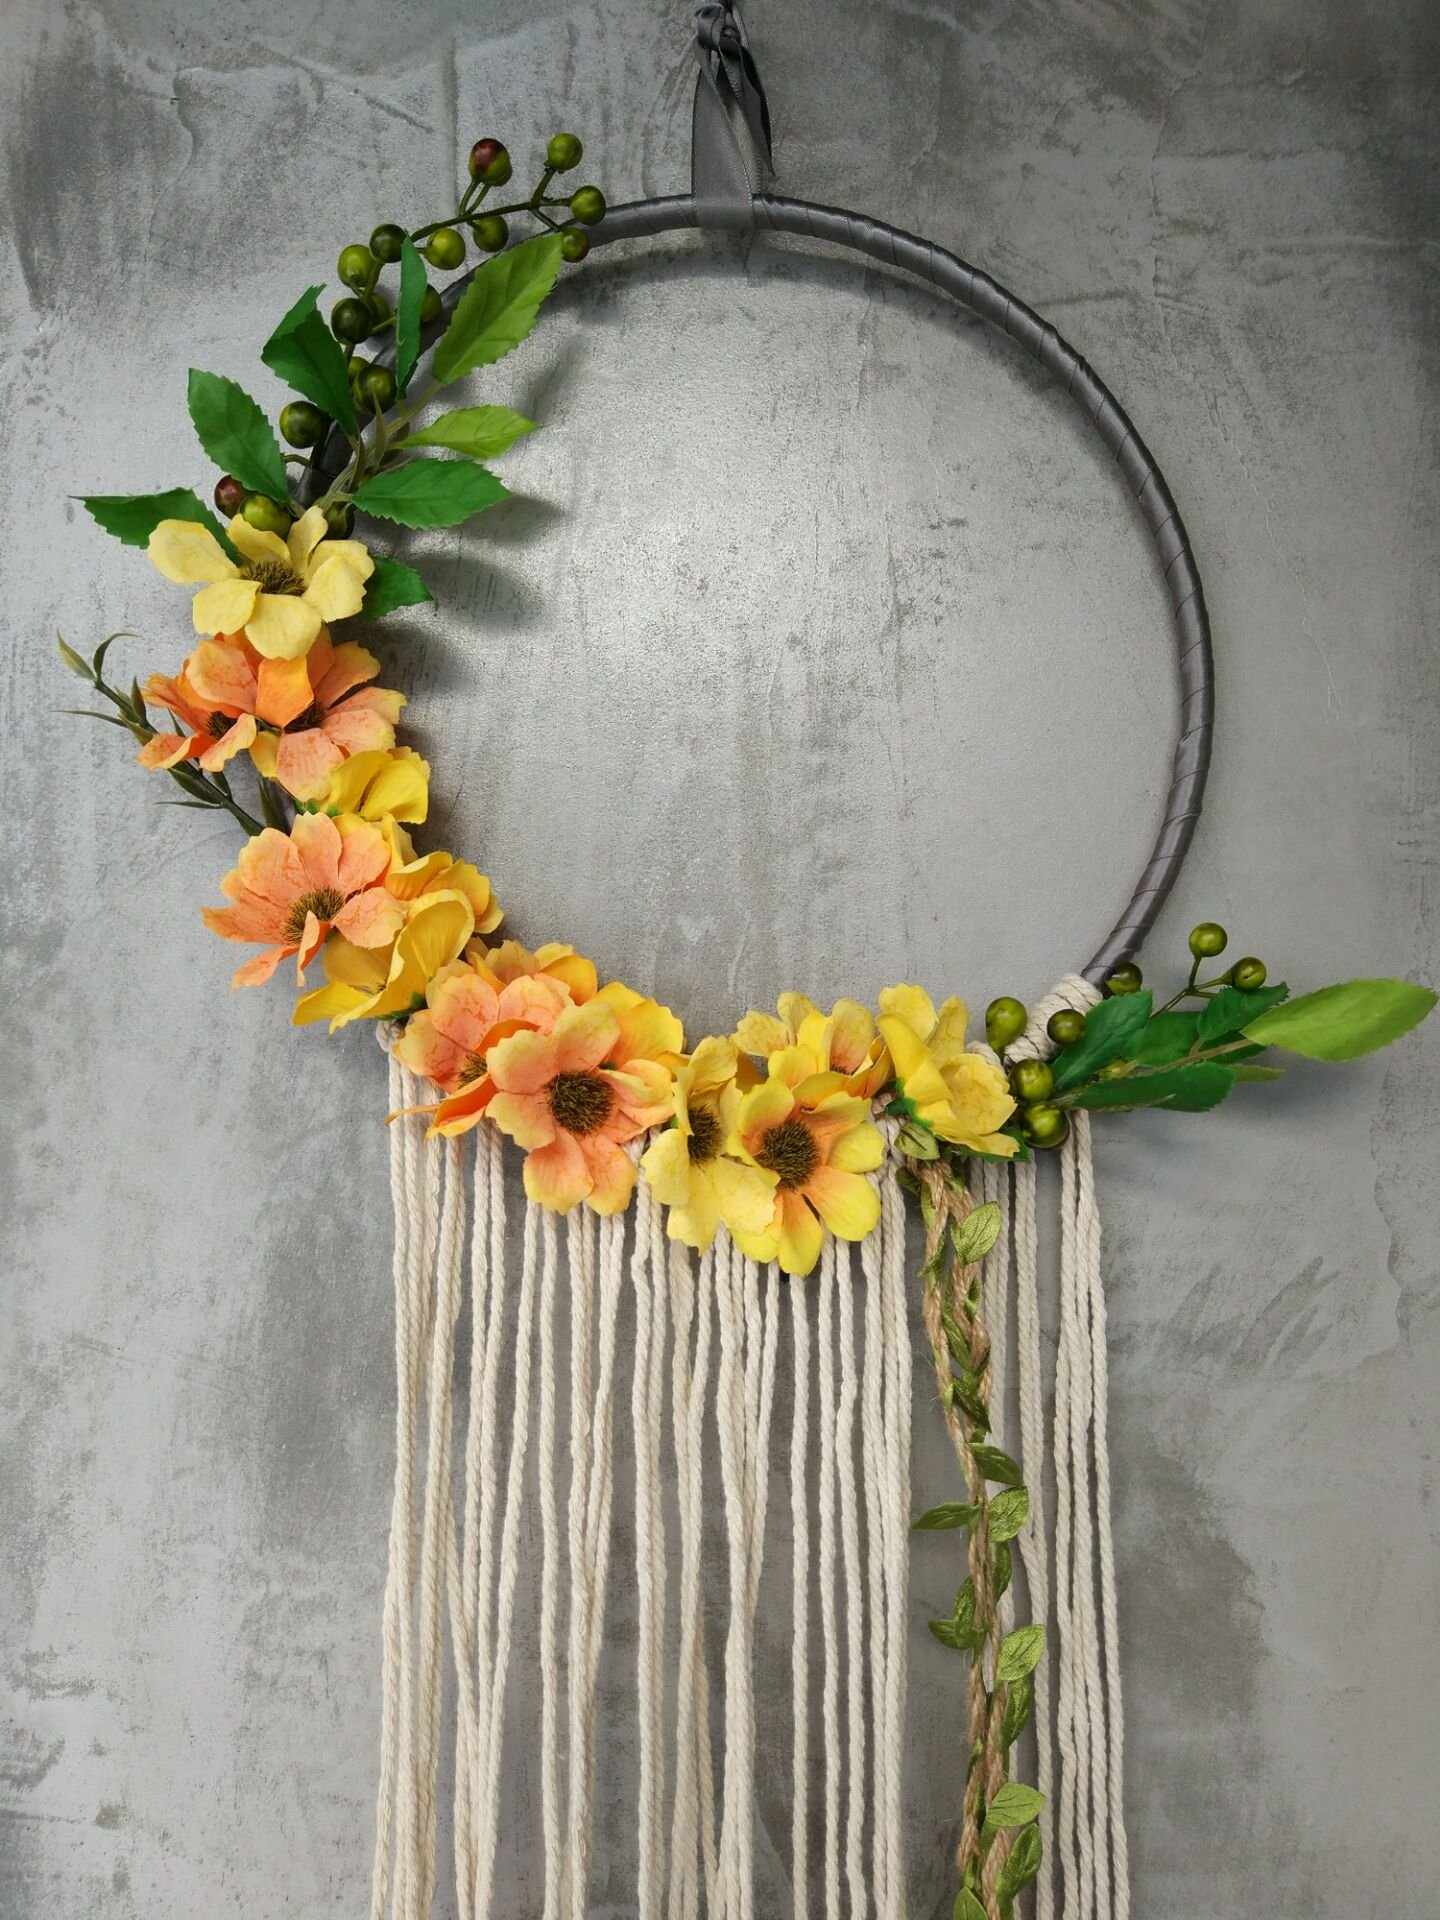 RISEON Handmade 32'' Long Large Tassel Dream Catcher Wall Hanging Decoration Macrame Fringe Floral Flower Wreath Dreamcatcher Boho Home Decor Ornament Gift (Yellow) by RISEON